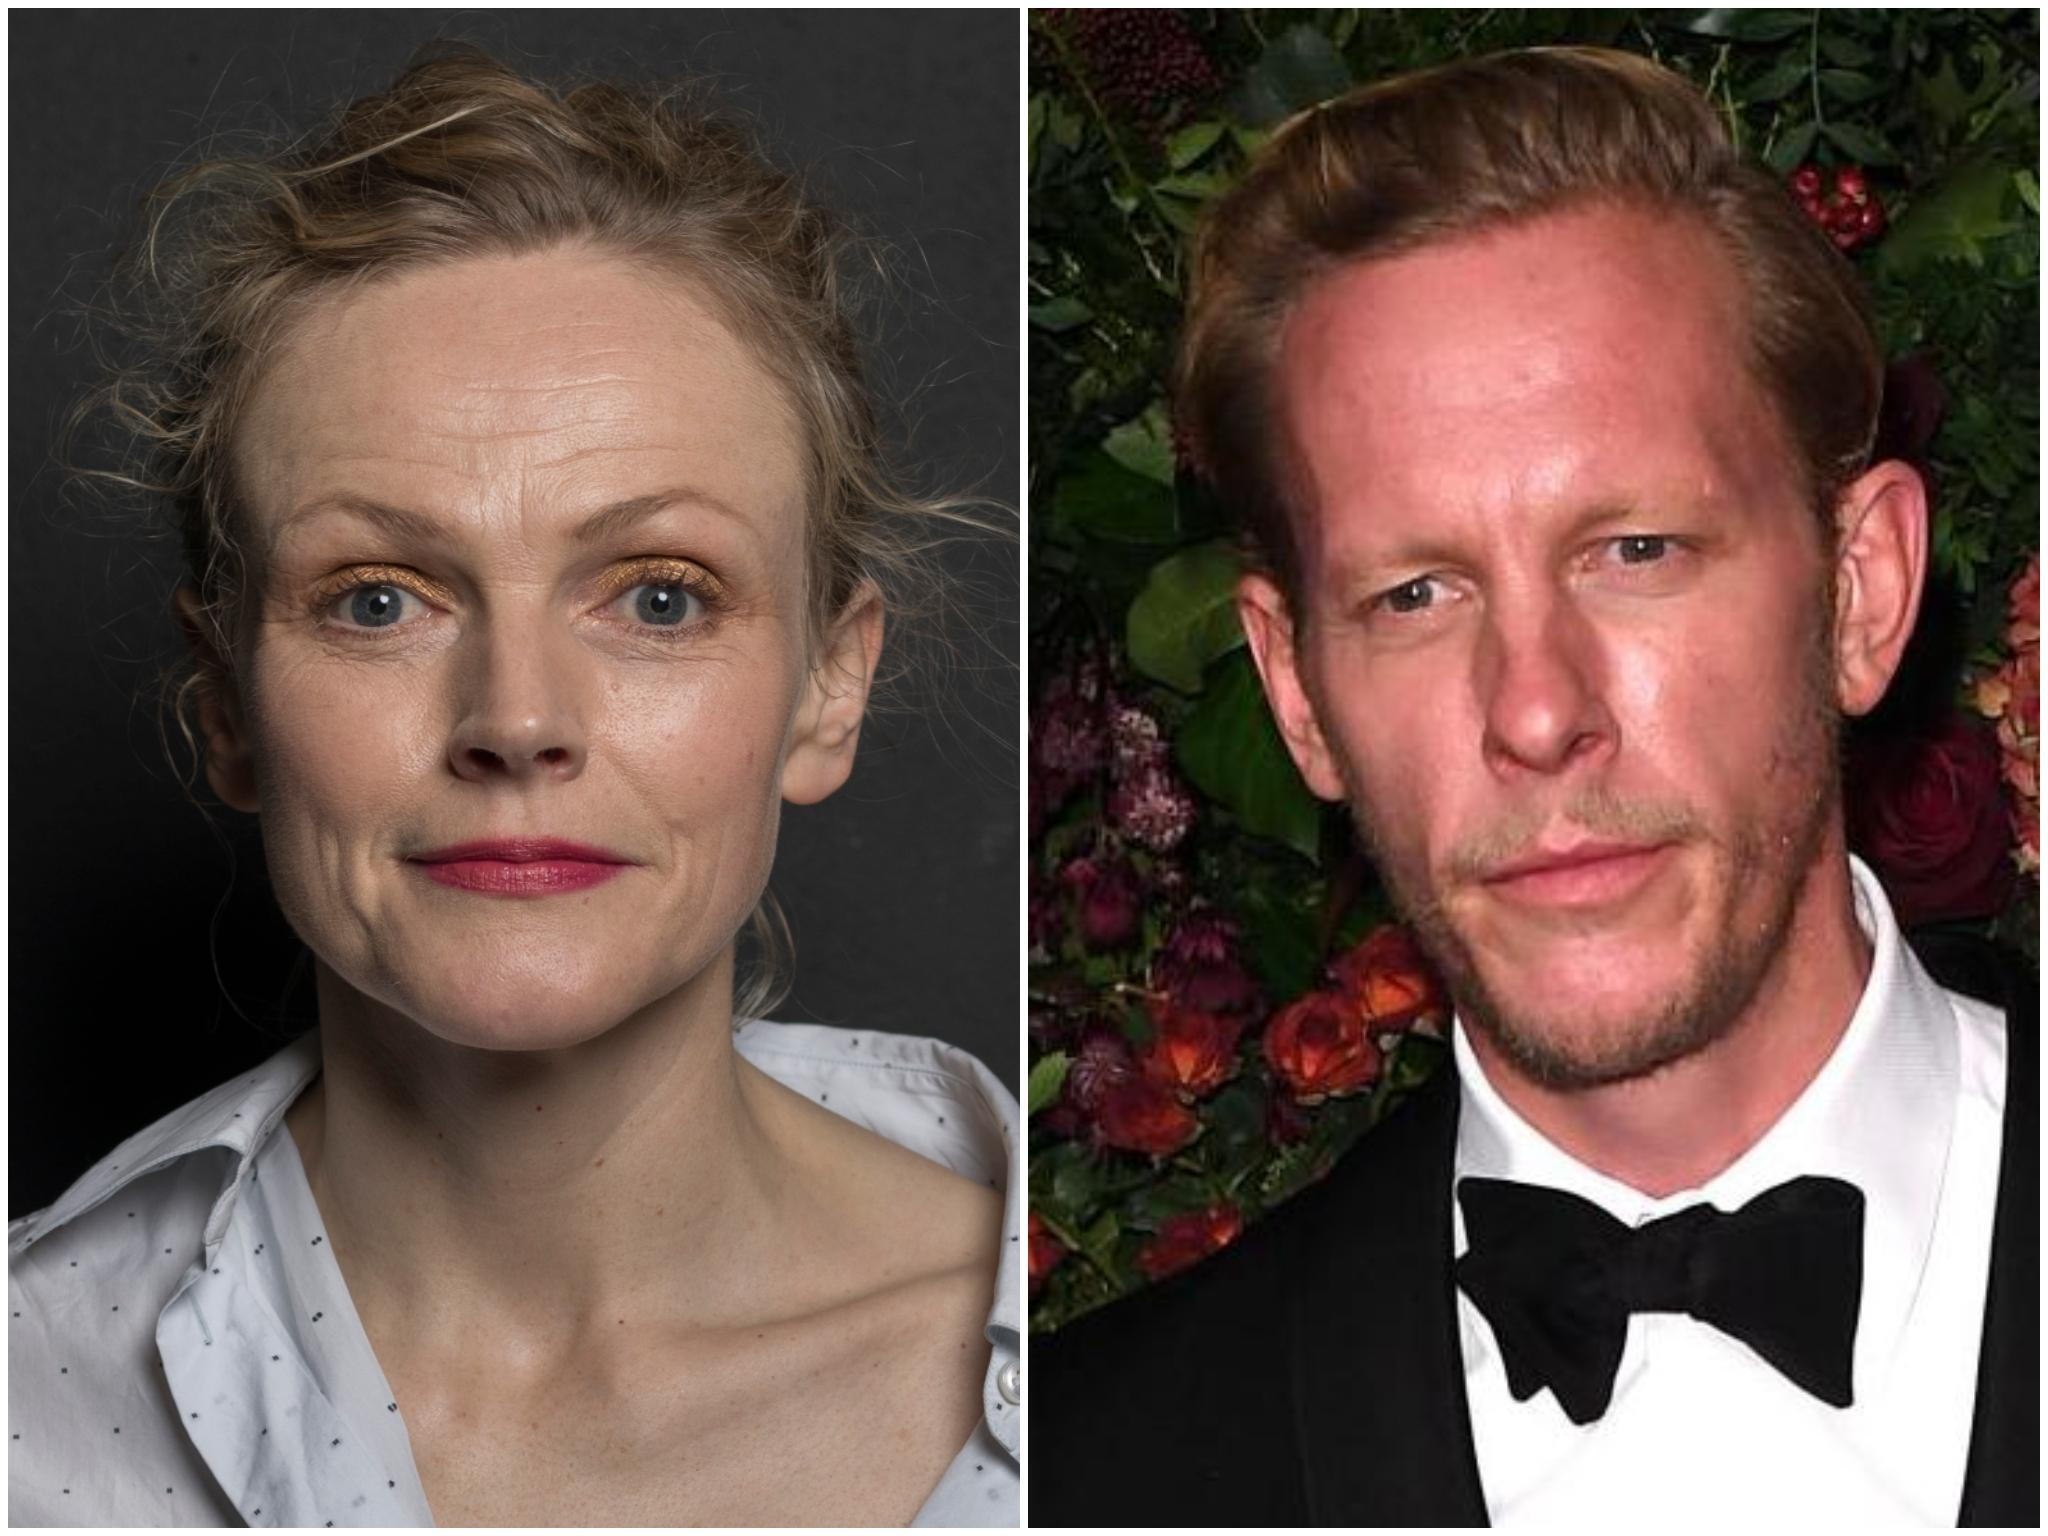 Maxine Peake tears into Laurence Fox over 'right wing' views and accuses of him of 'wanting attention'